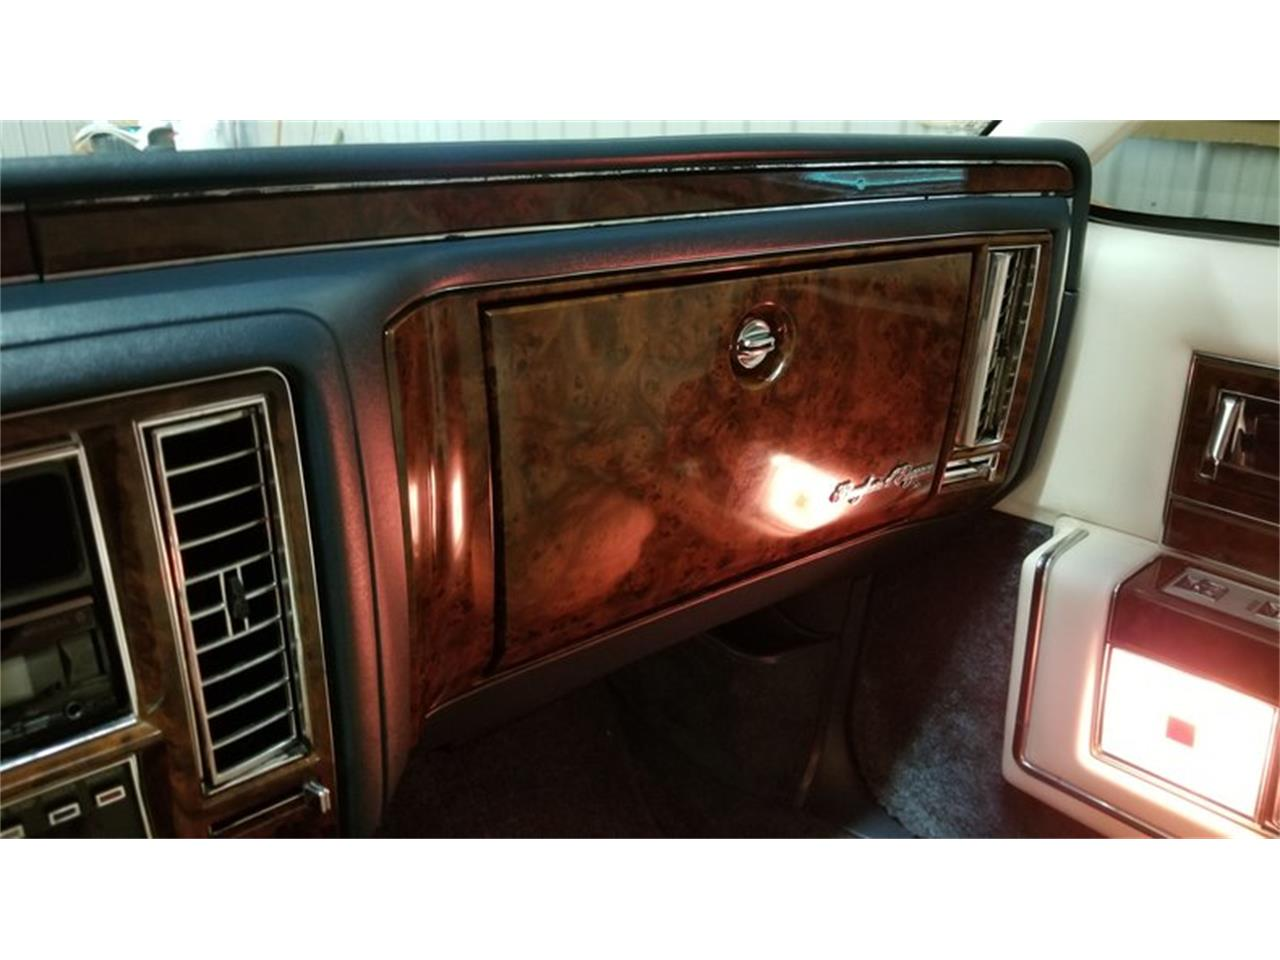 1991 Cadillac Brougham for sale in Mankato, MN – photo 30